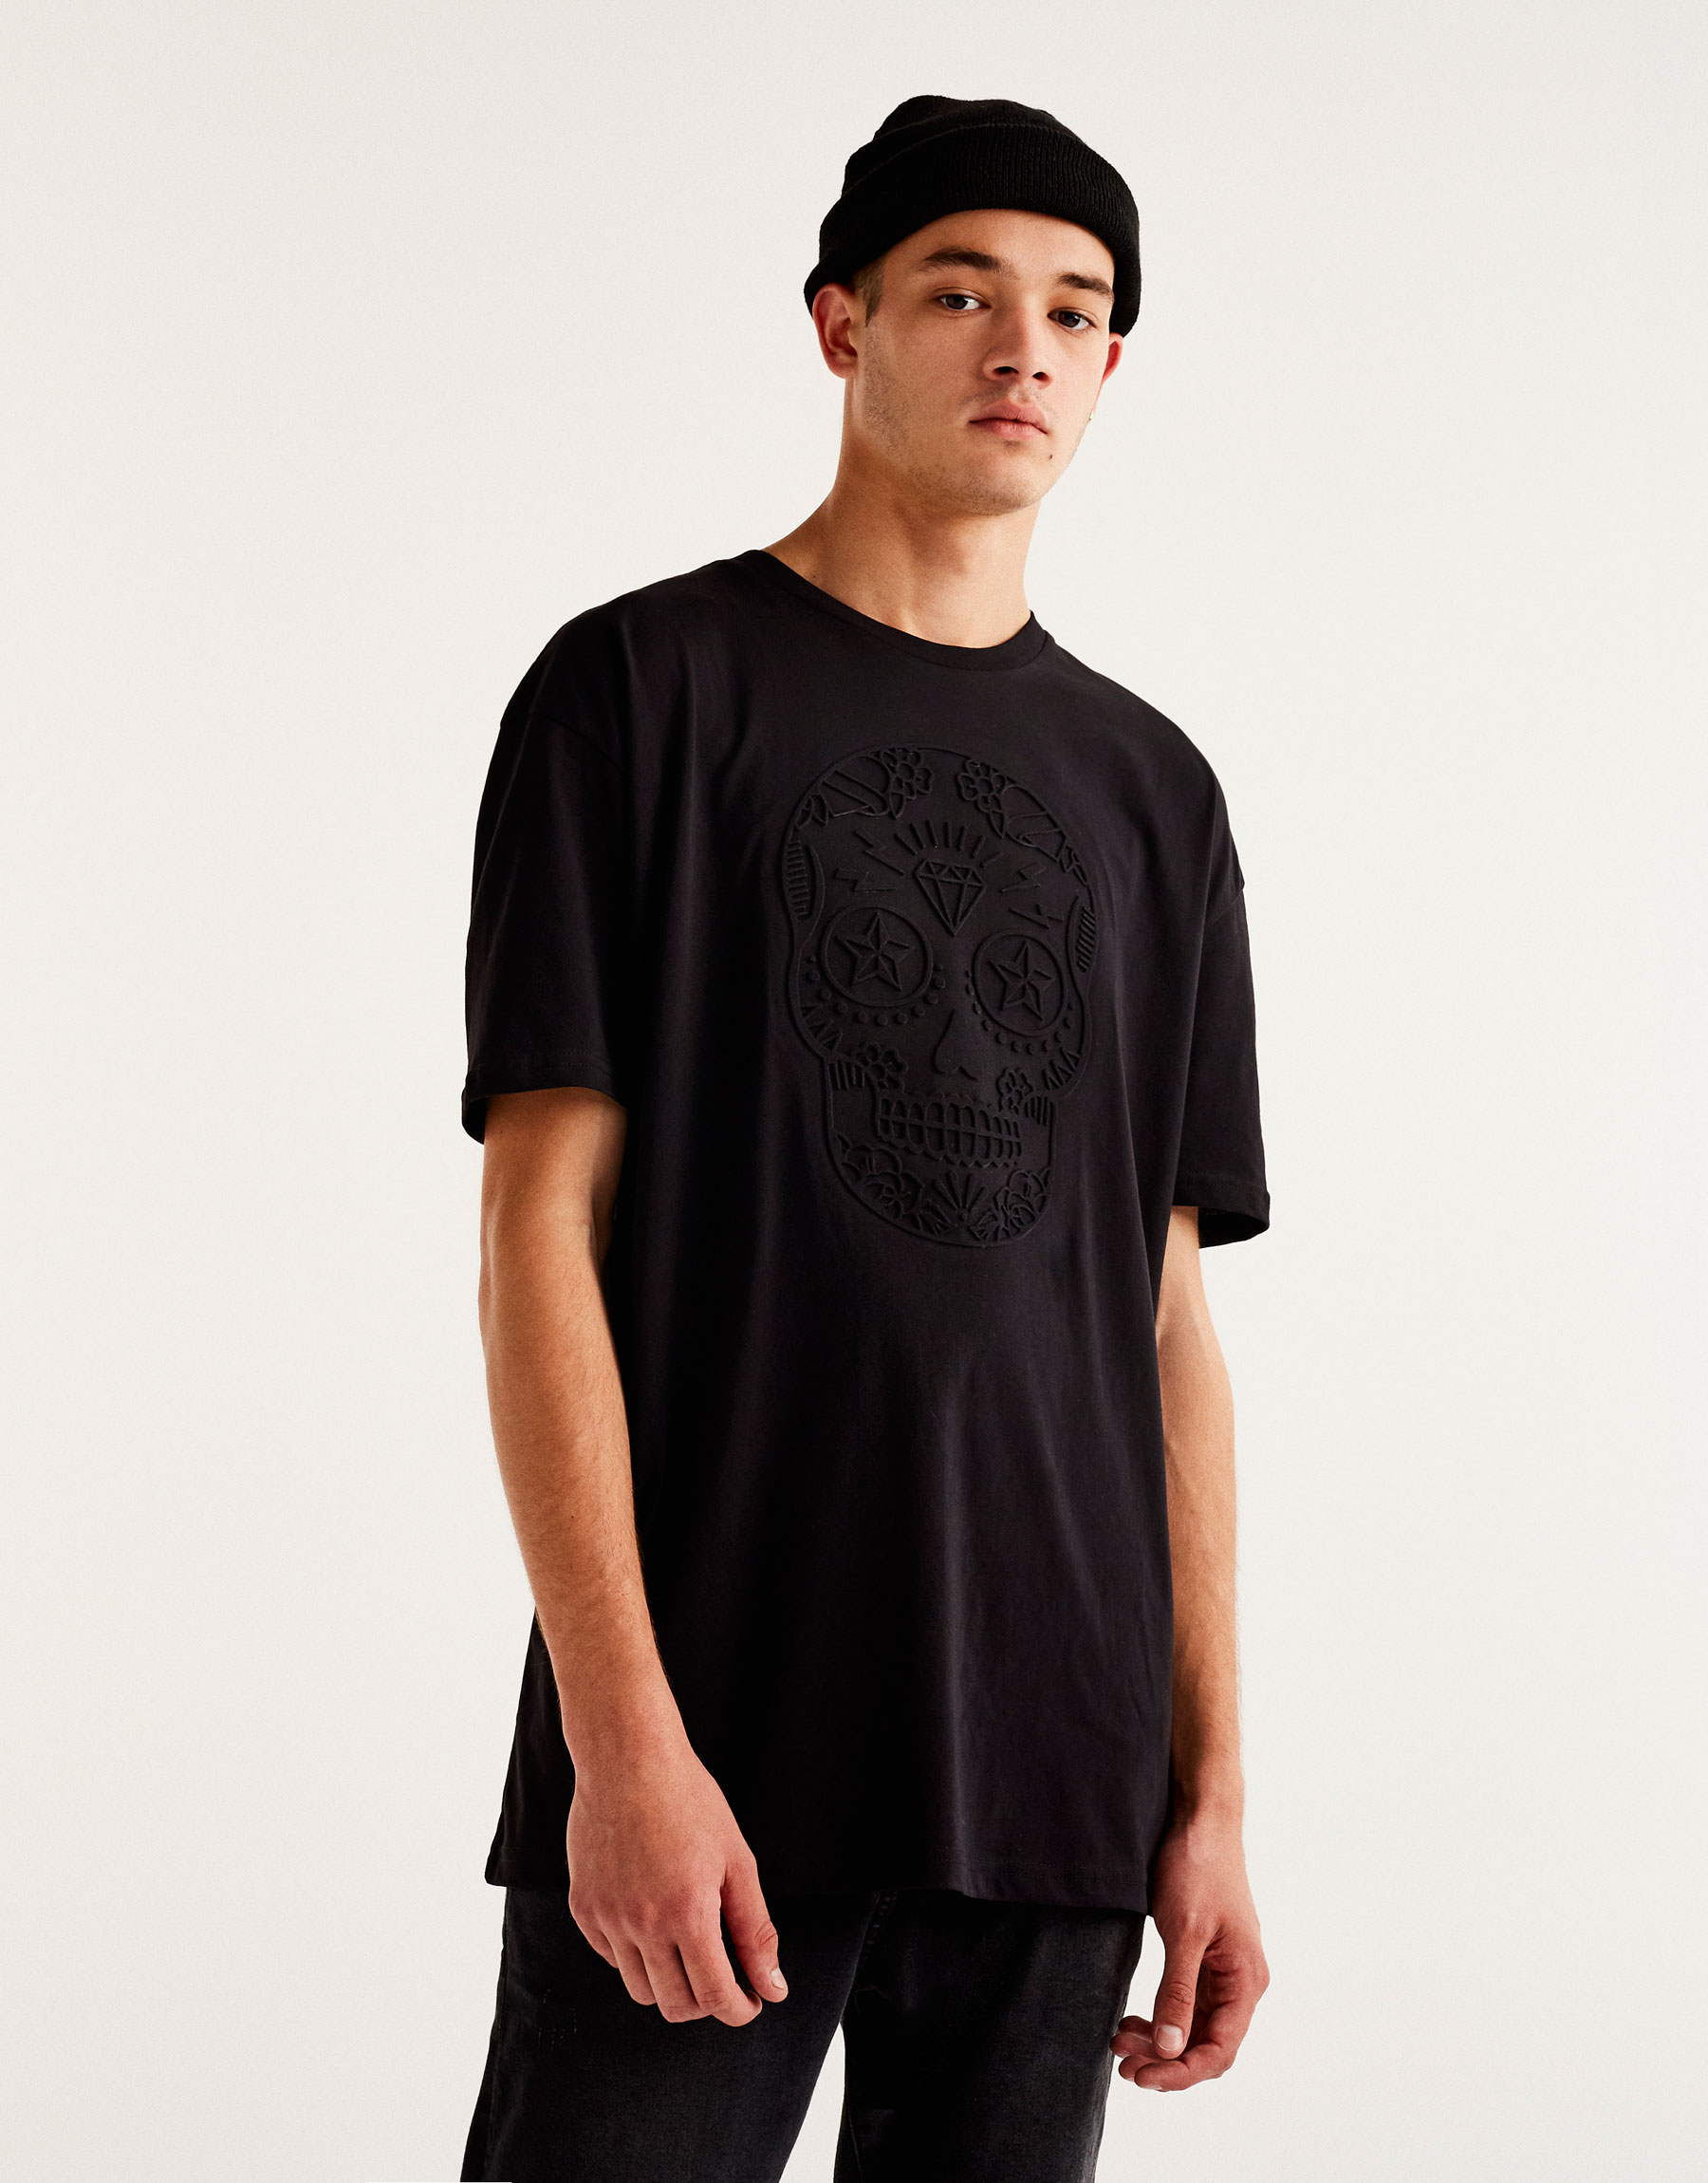 T-shirt with embossed skull